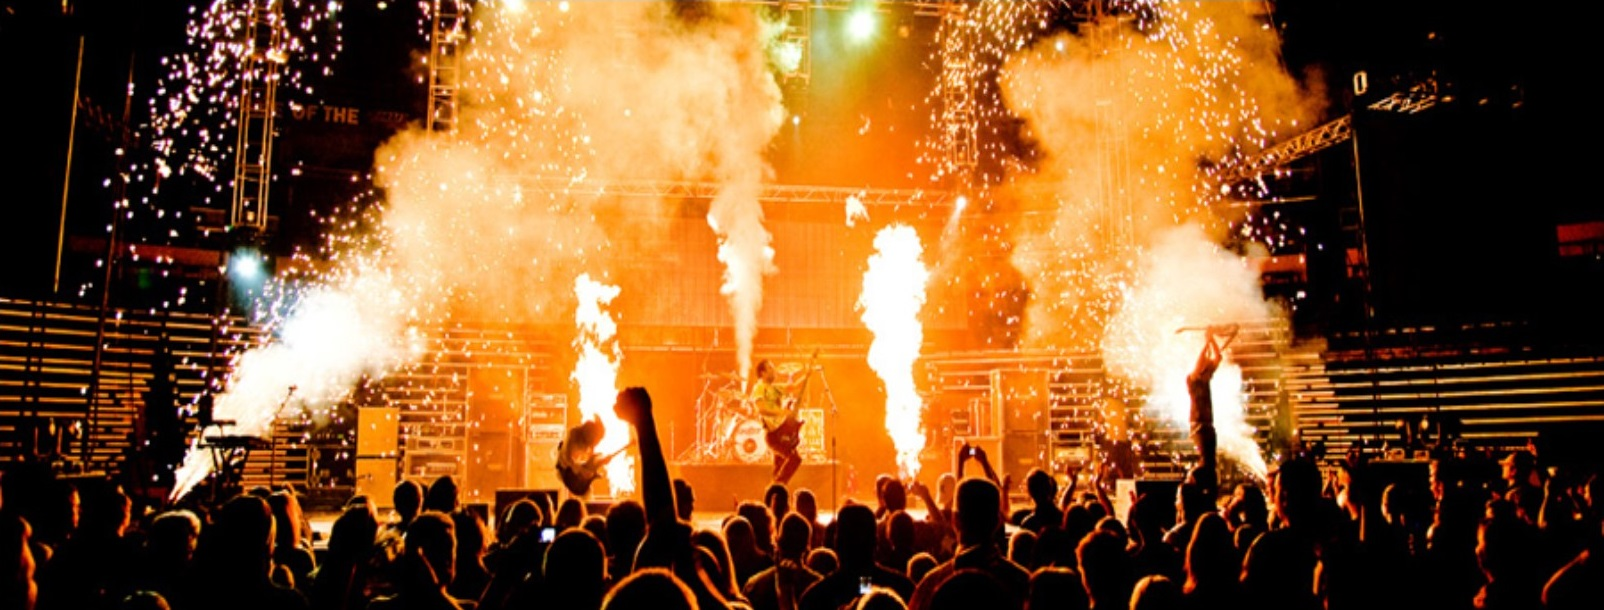 Stage Pyrotechnics and Flame special effects